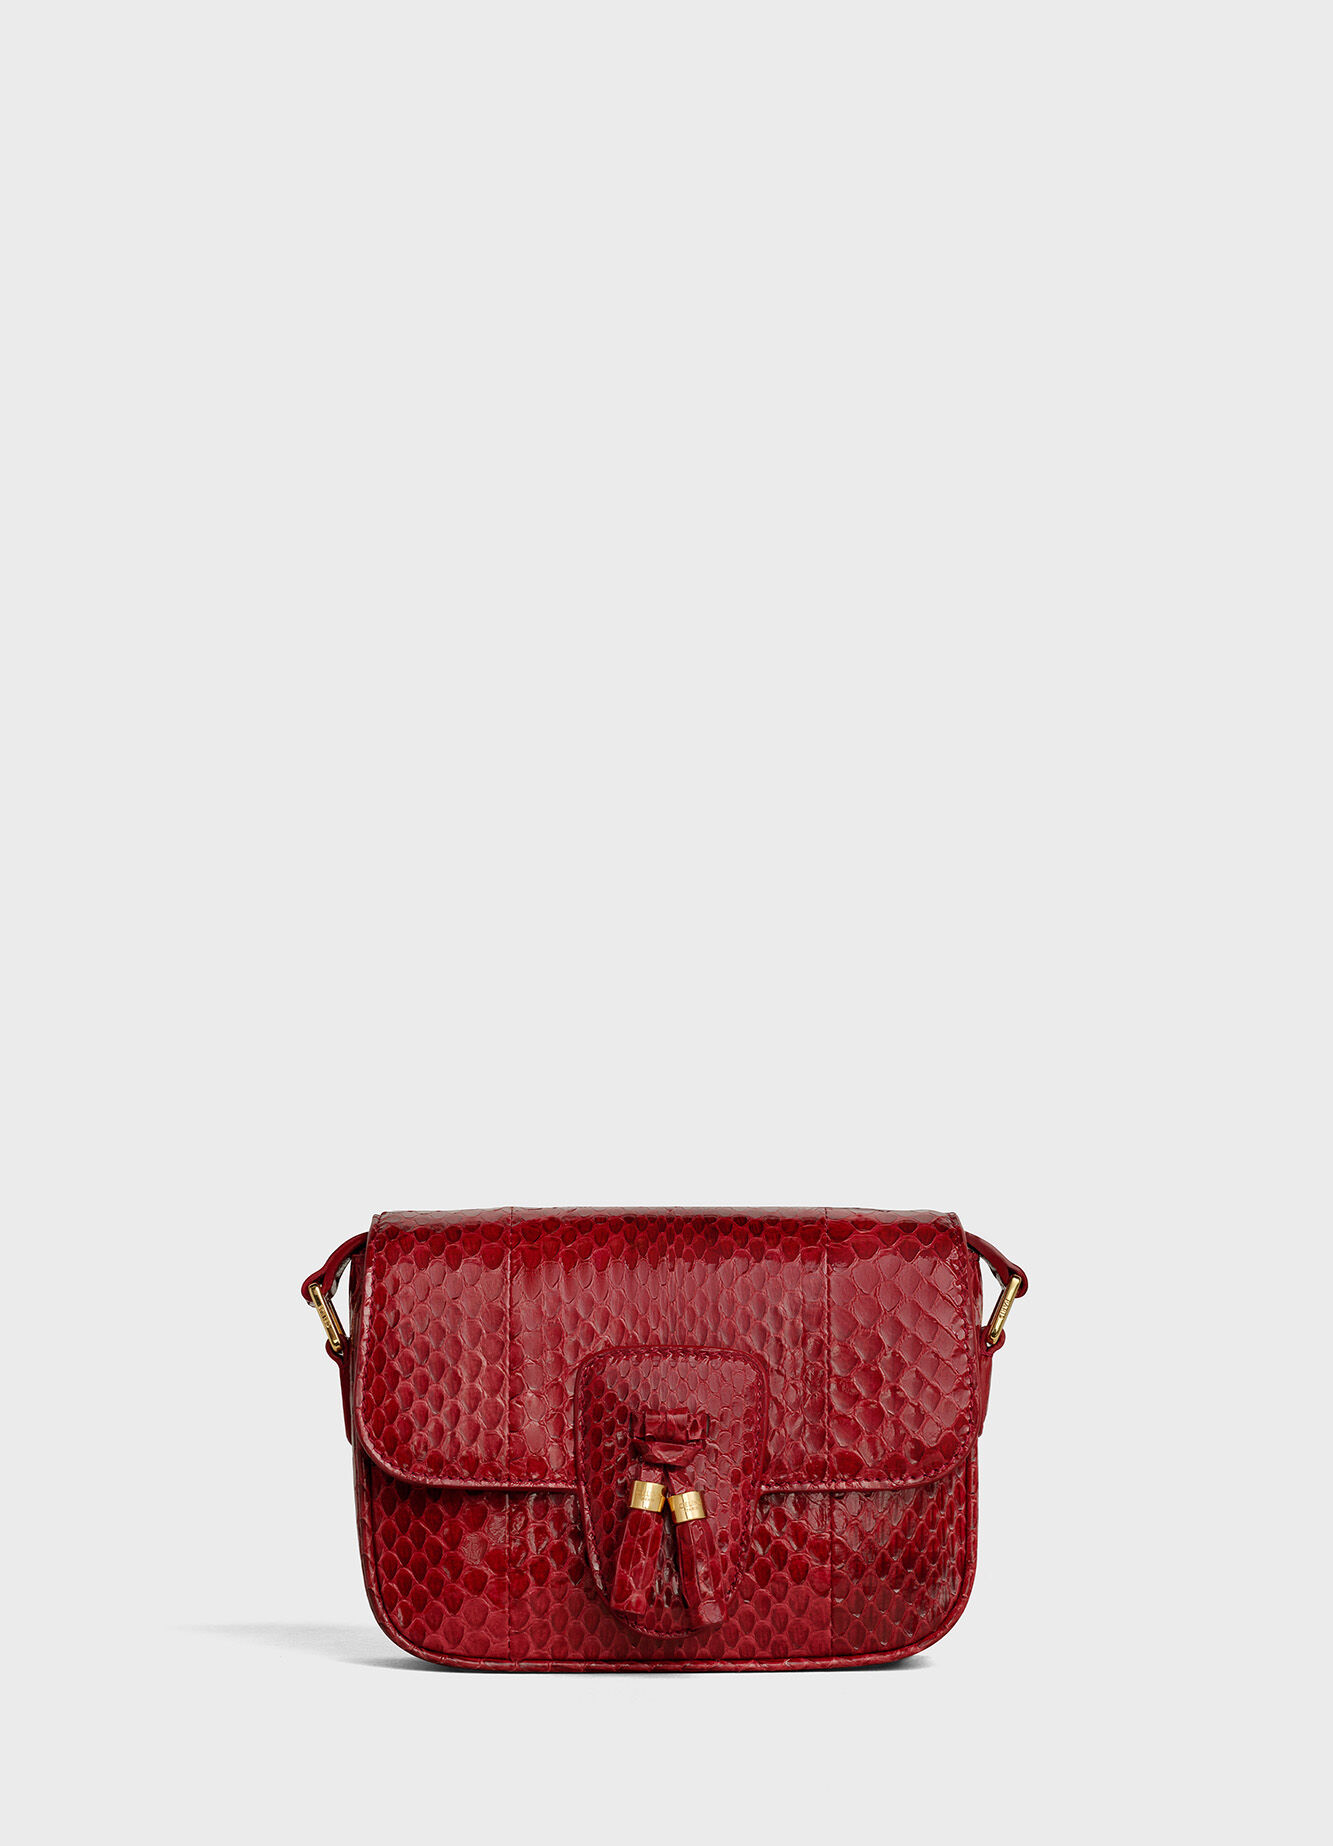 CELINE TEEN TASSELS BAG IN WATERSNAKE